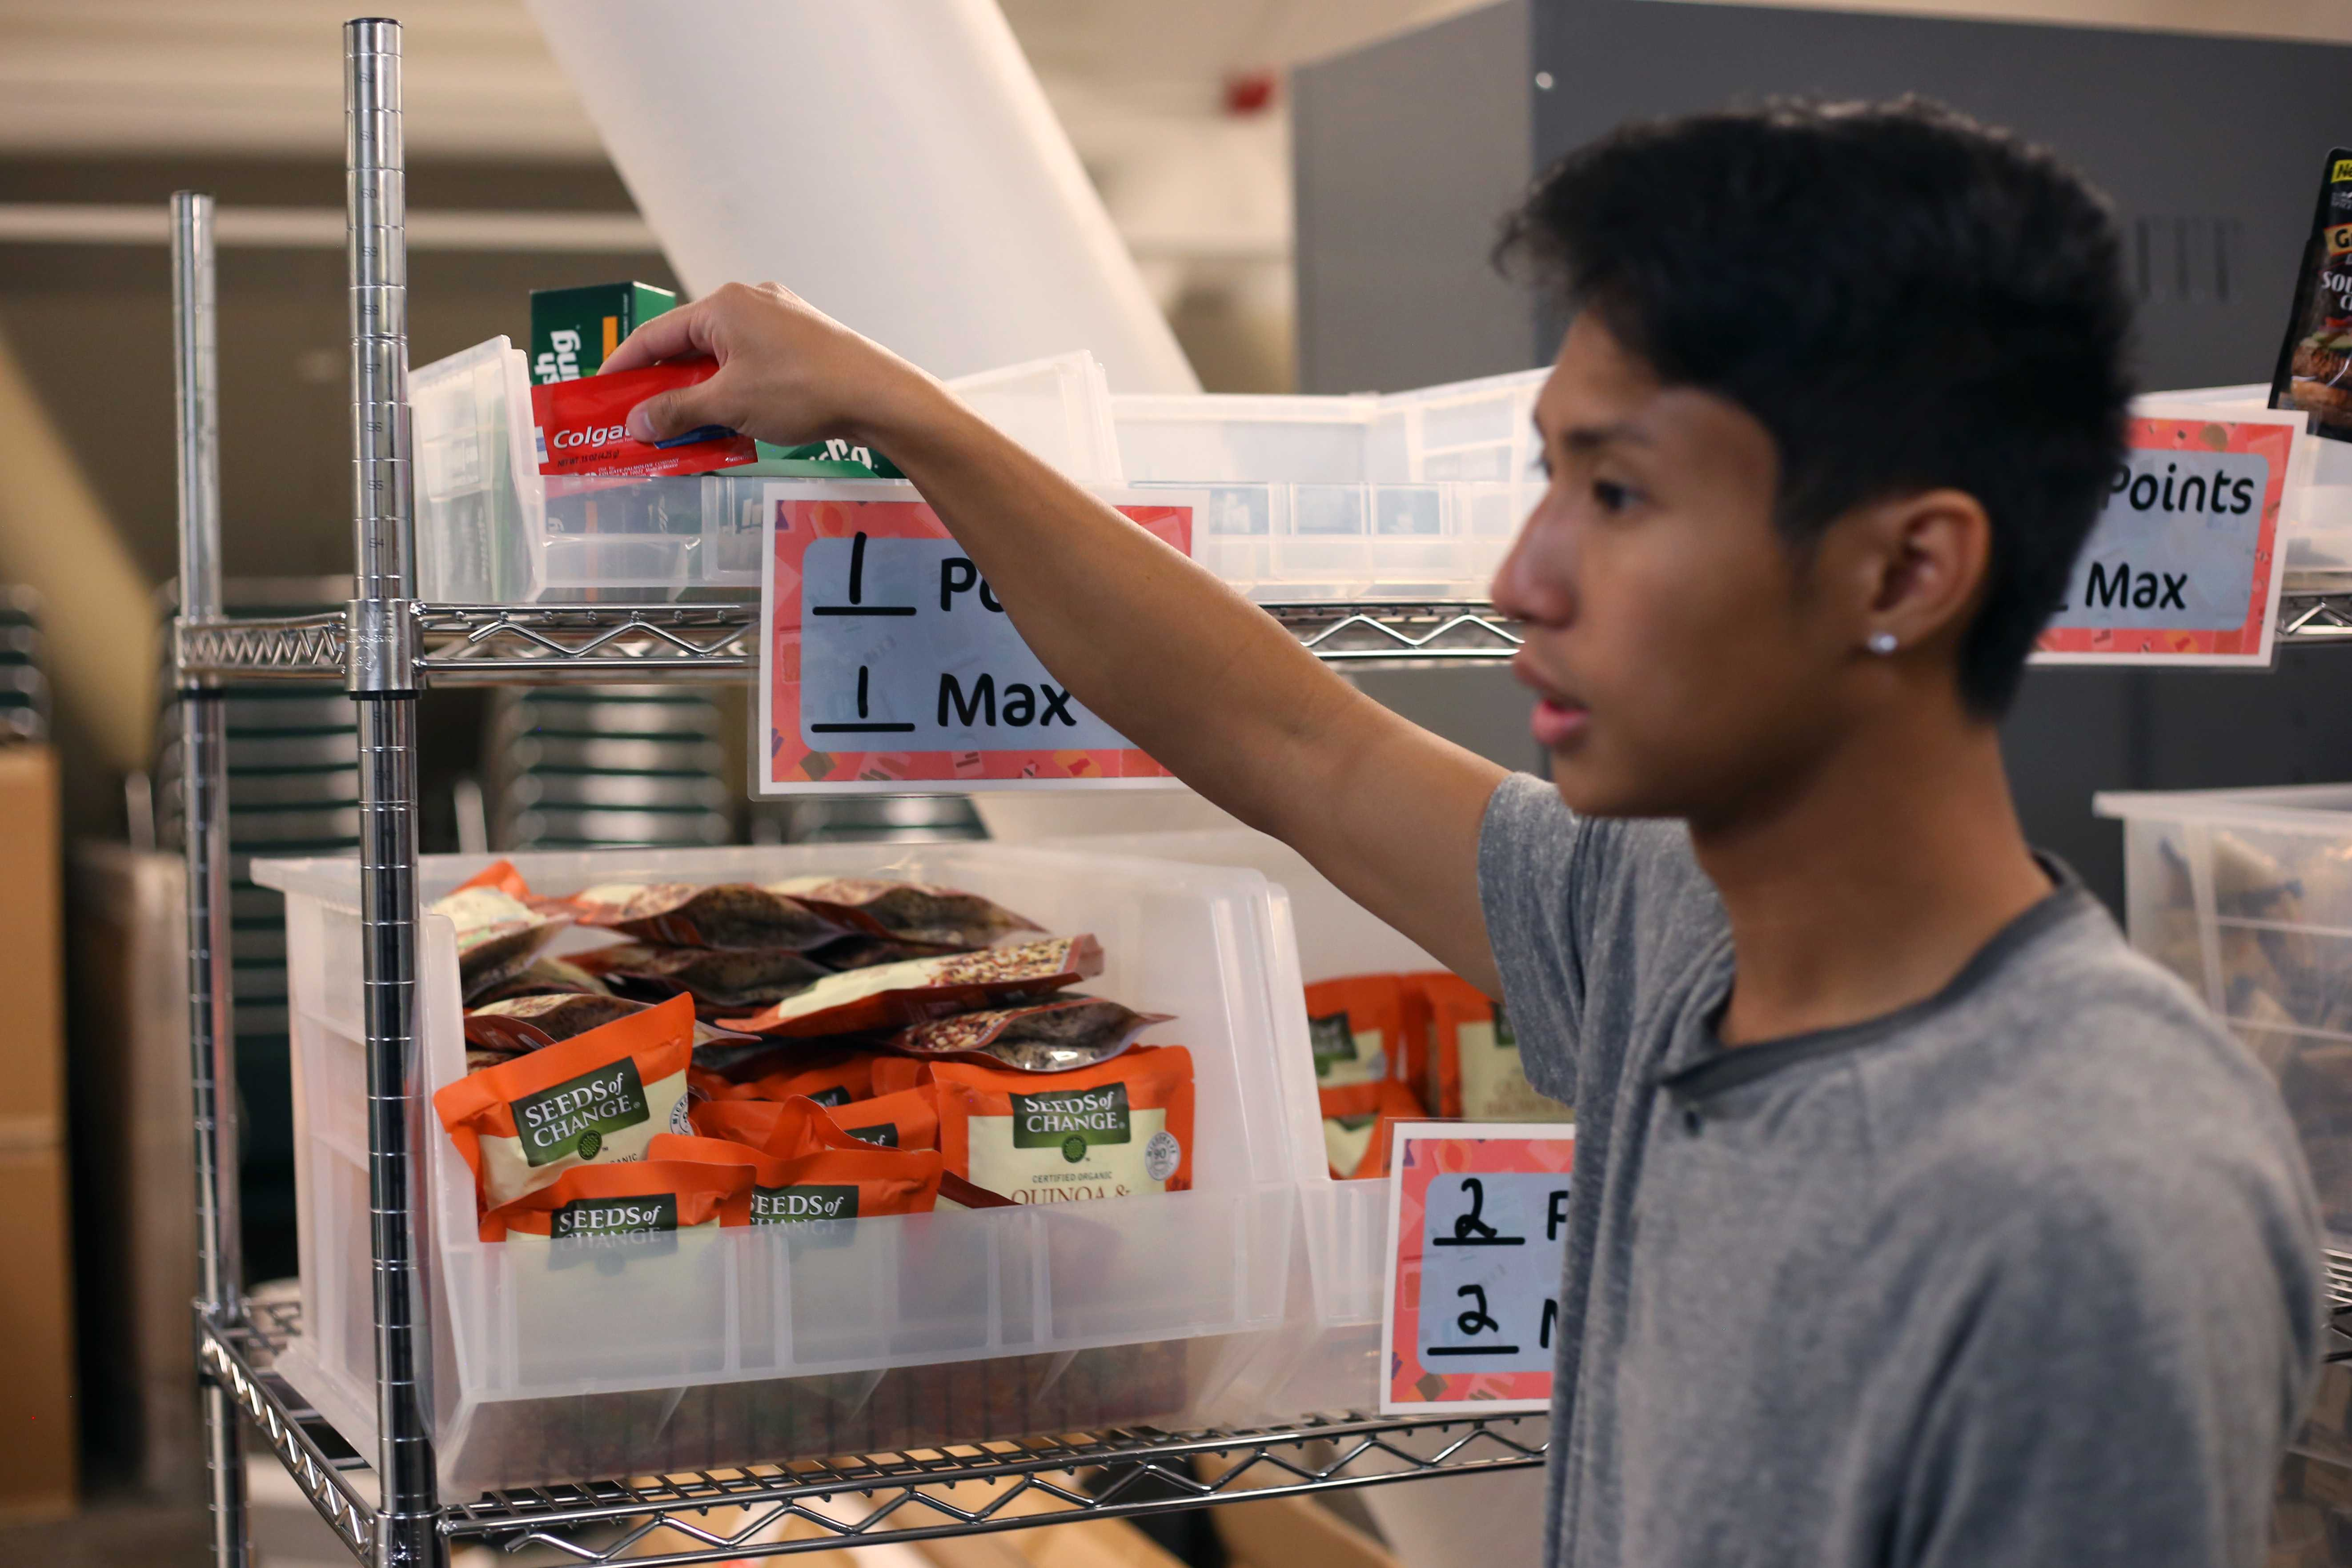 Asian American studies major Nathaniel Roque picks up a towelette in the Pyramid room where the food cupboard is held, next to the Jack Adams Hall in the Cesar Chavez Student Center on Wednesday, Sept. 19. (Christian Urrutia/Golden Gate Xpress)